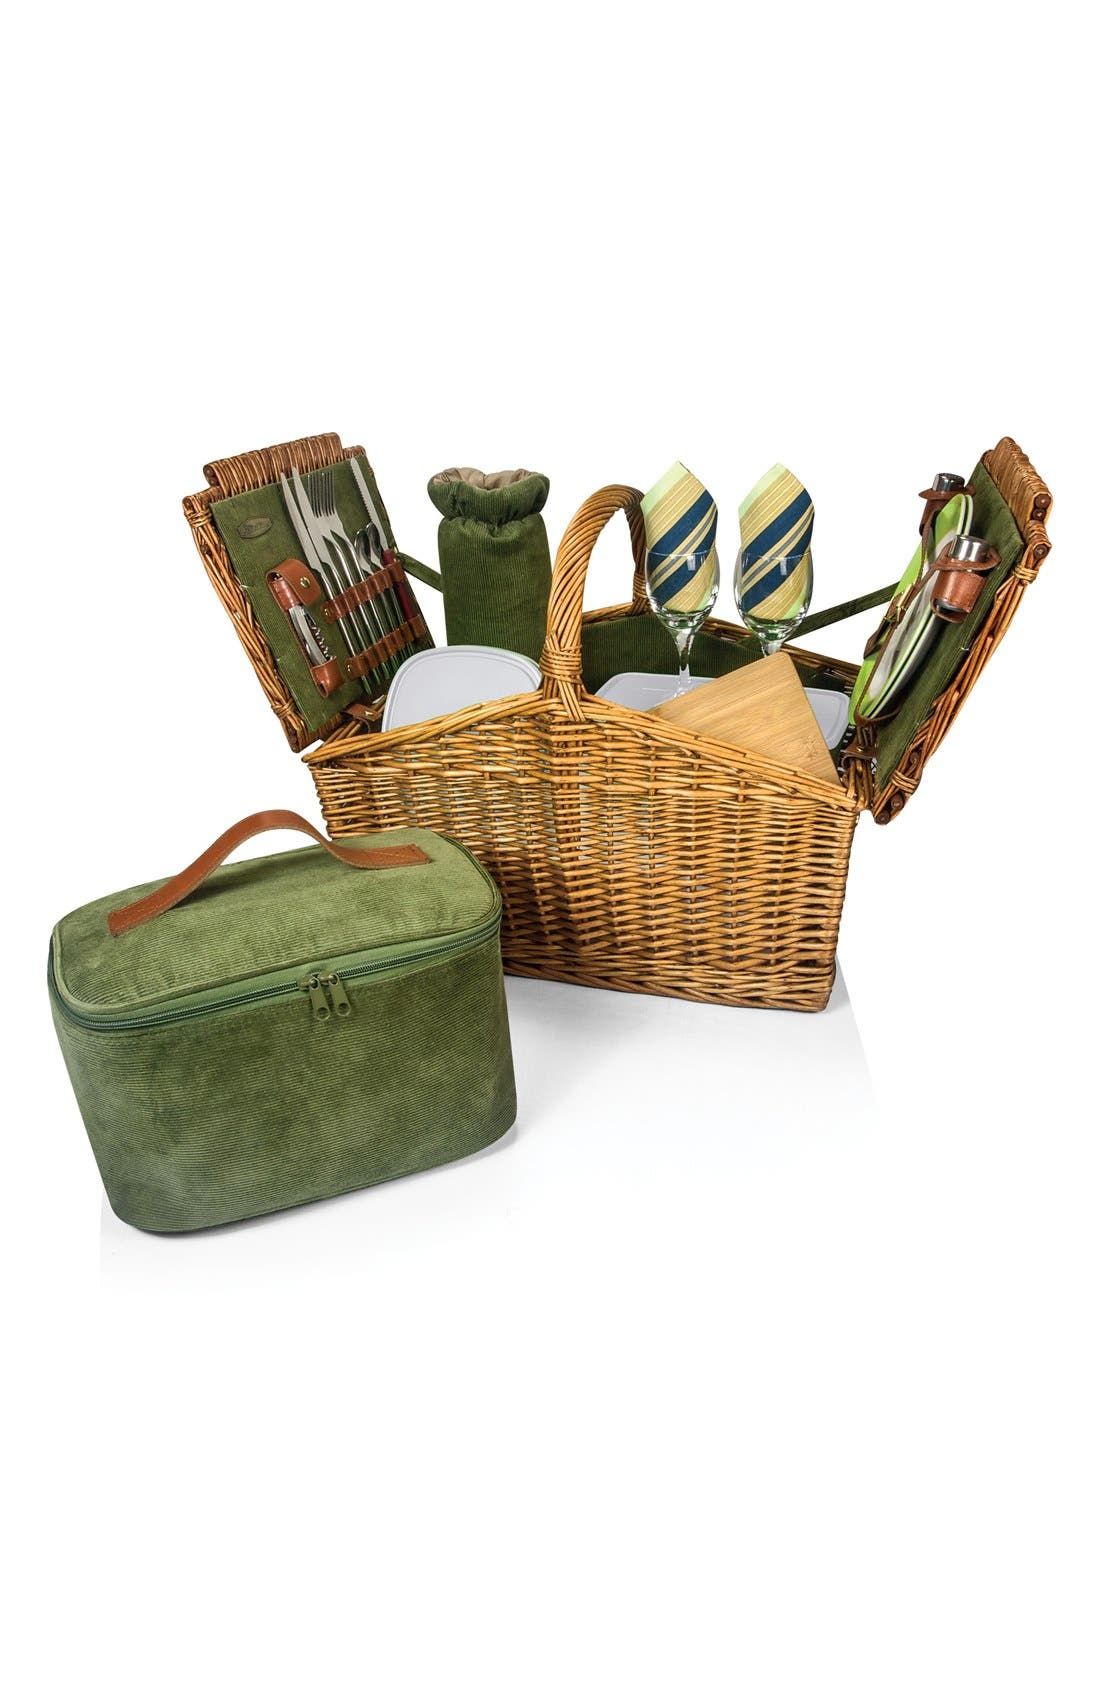 'Somerset' Wicker Picnic Basket,                             Main thumbnail 1, color,                             Green